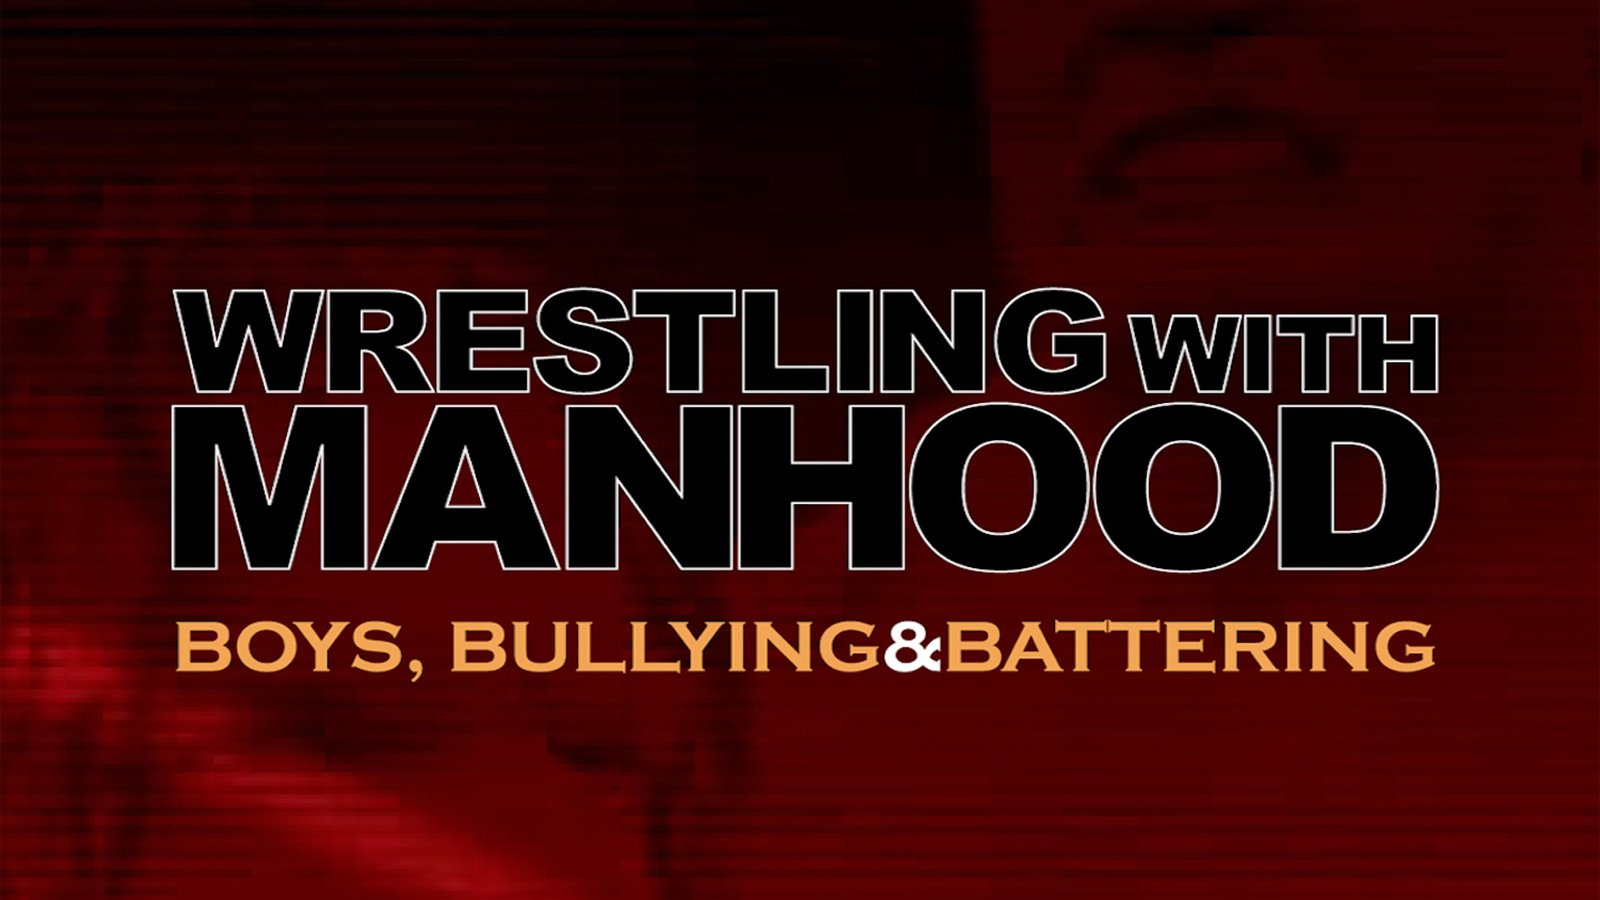 Wrestling with Manhood - Boys, Bullying and Battering